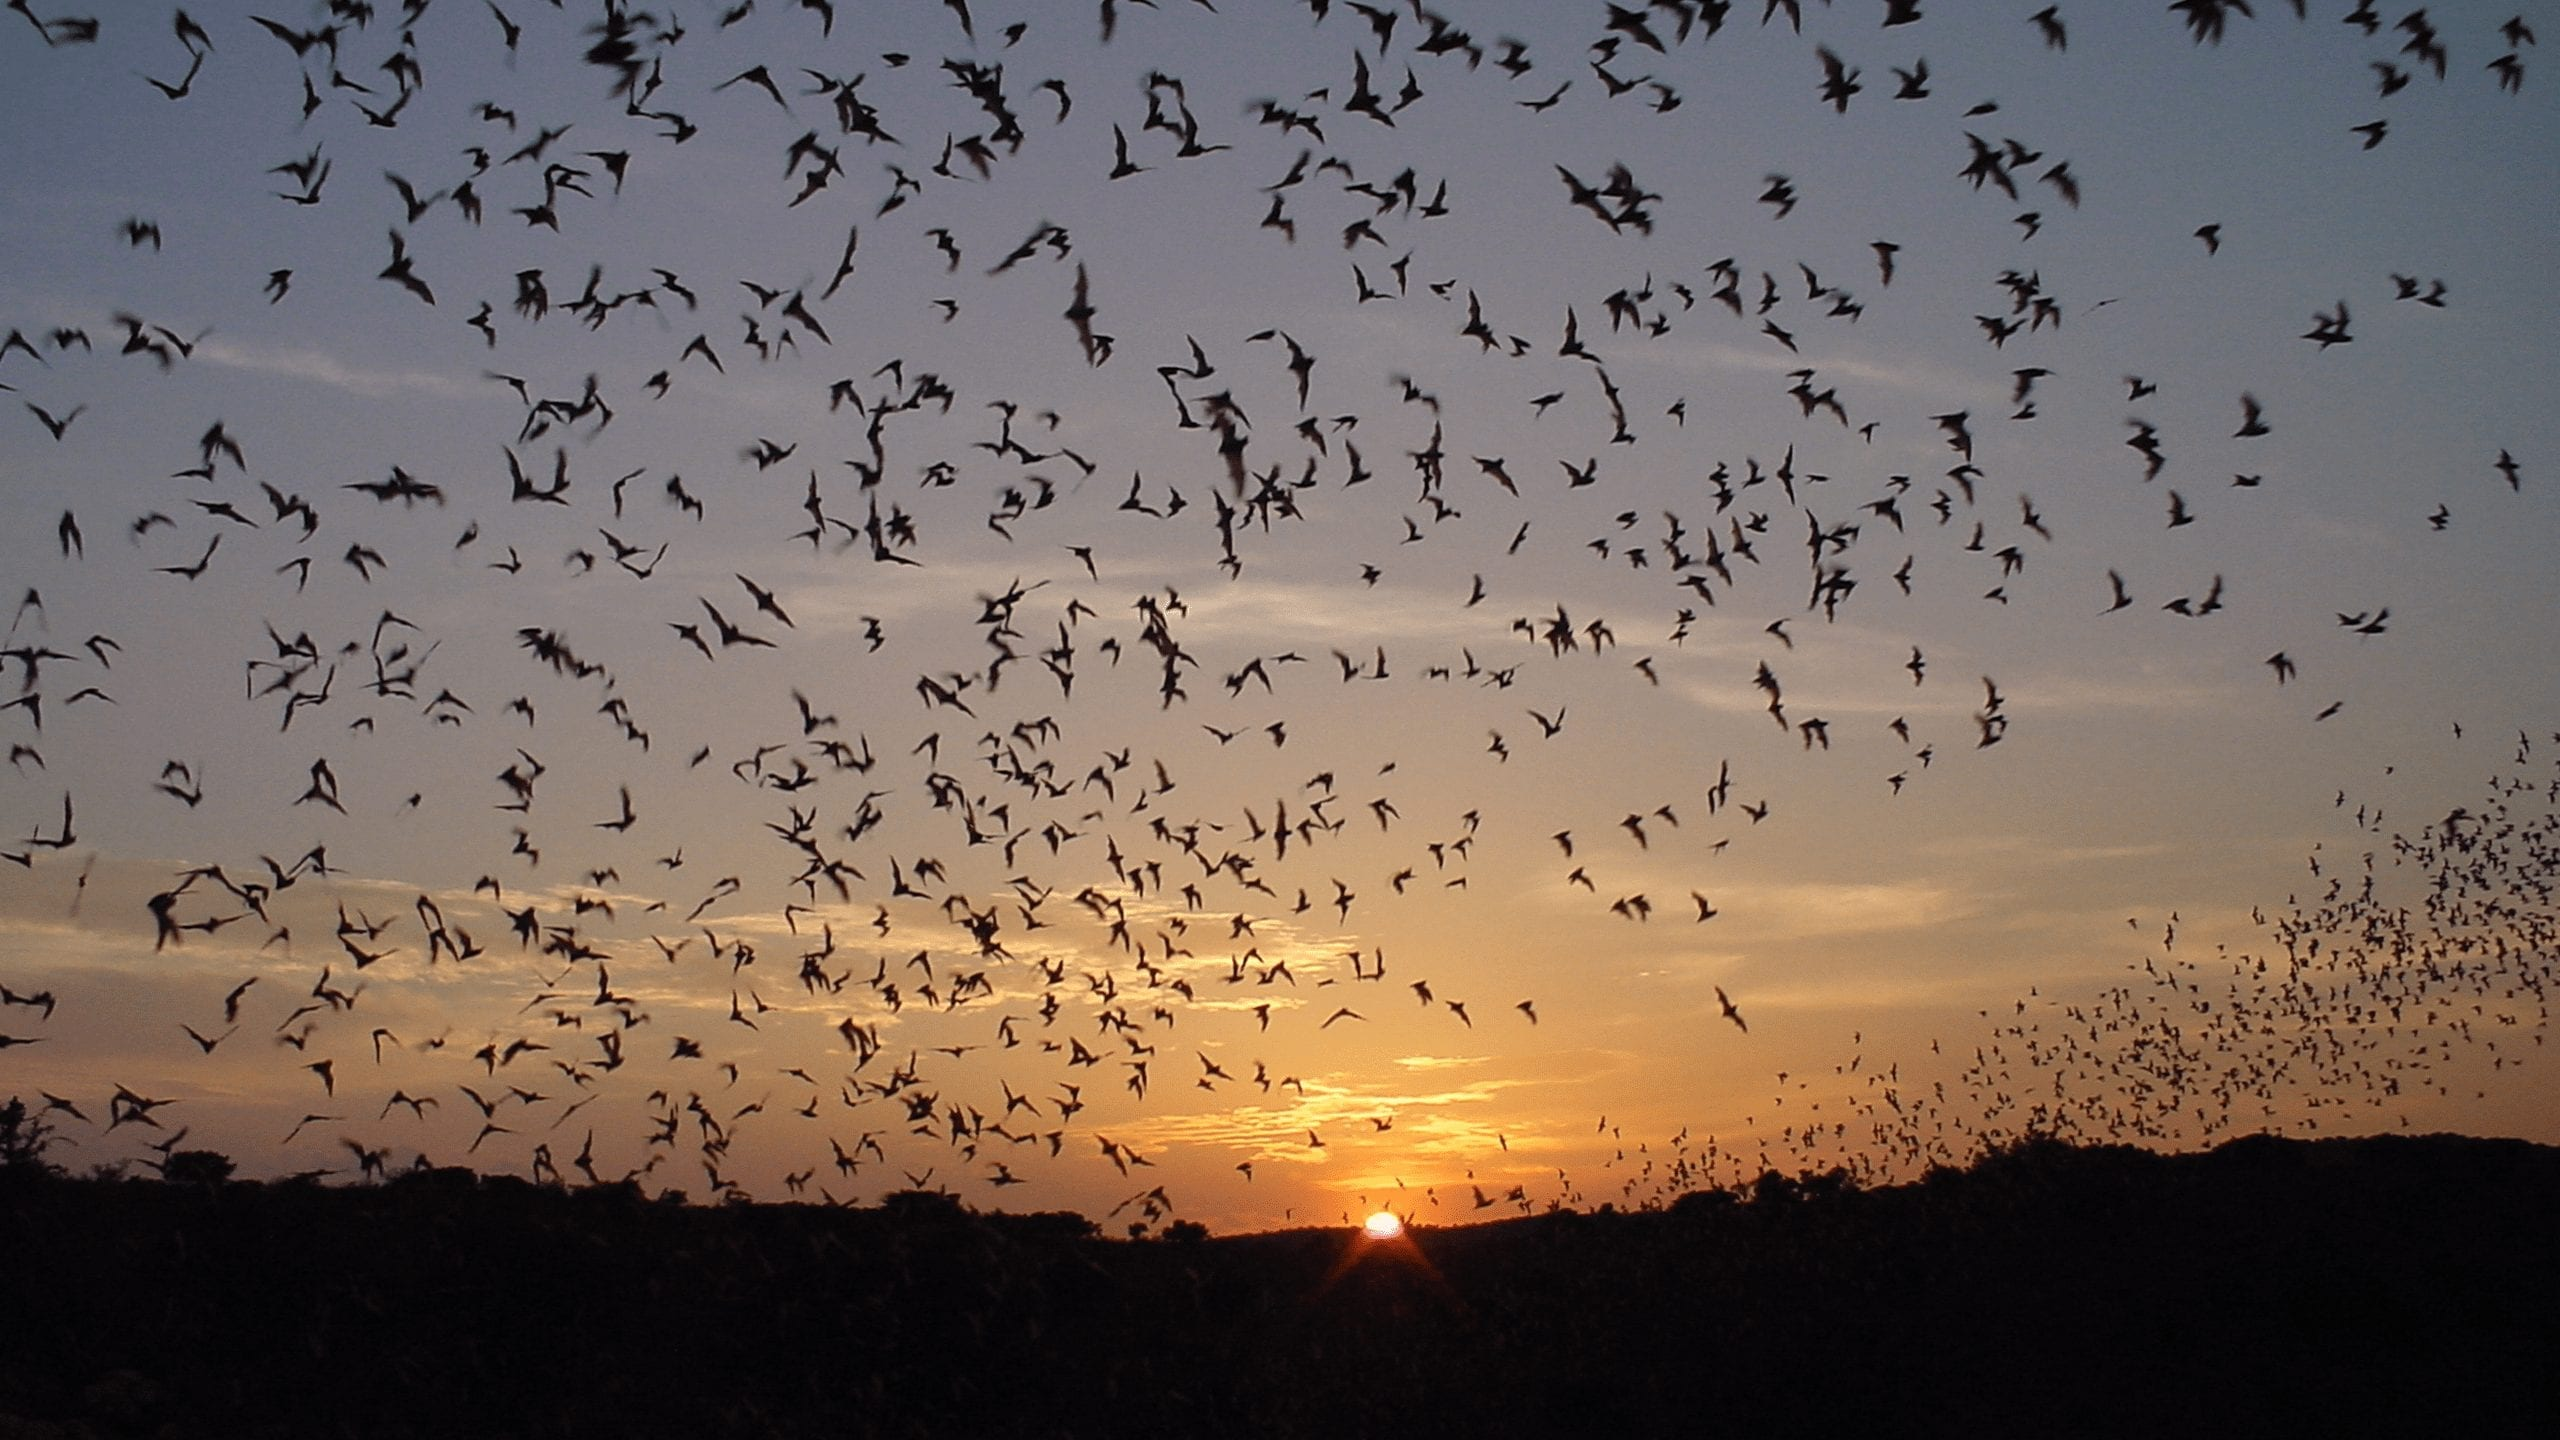 The Batty Parks with Bats!